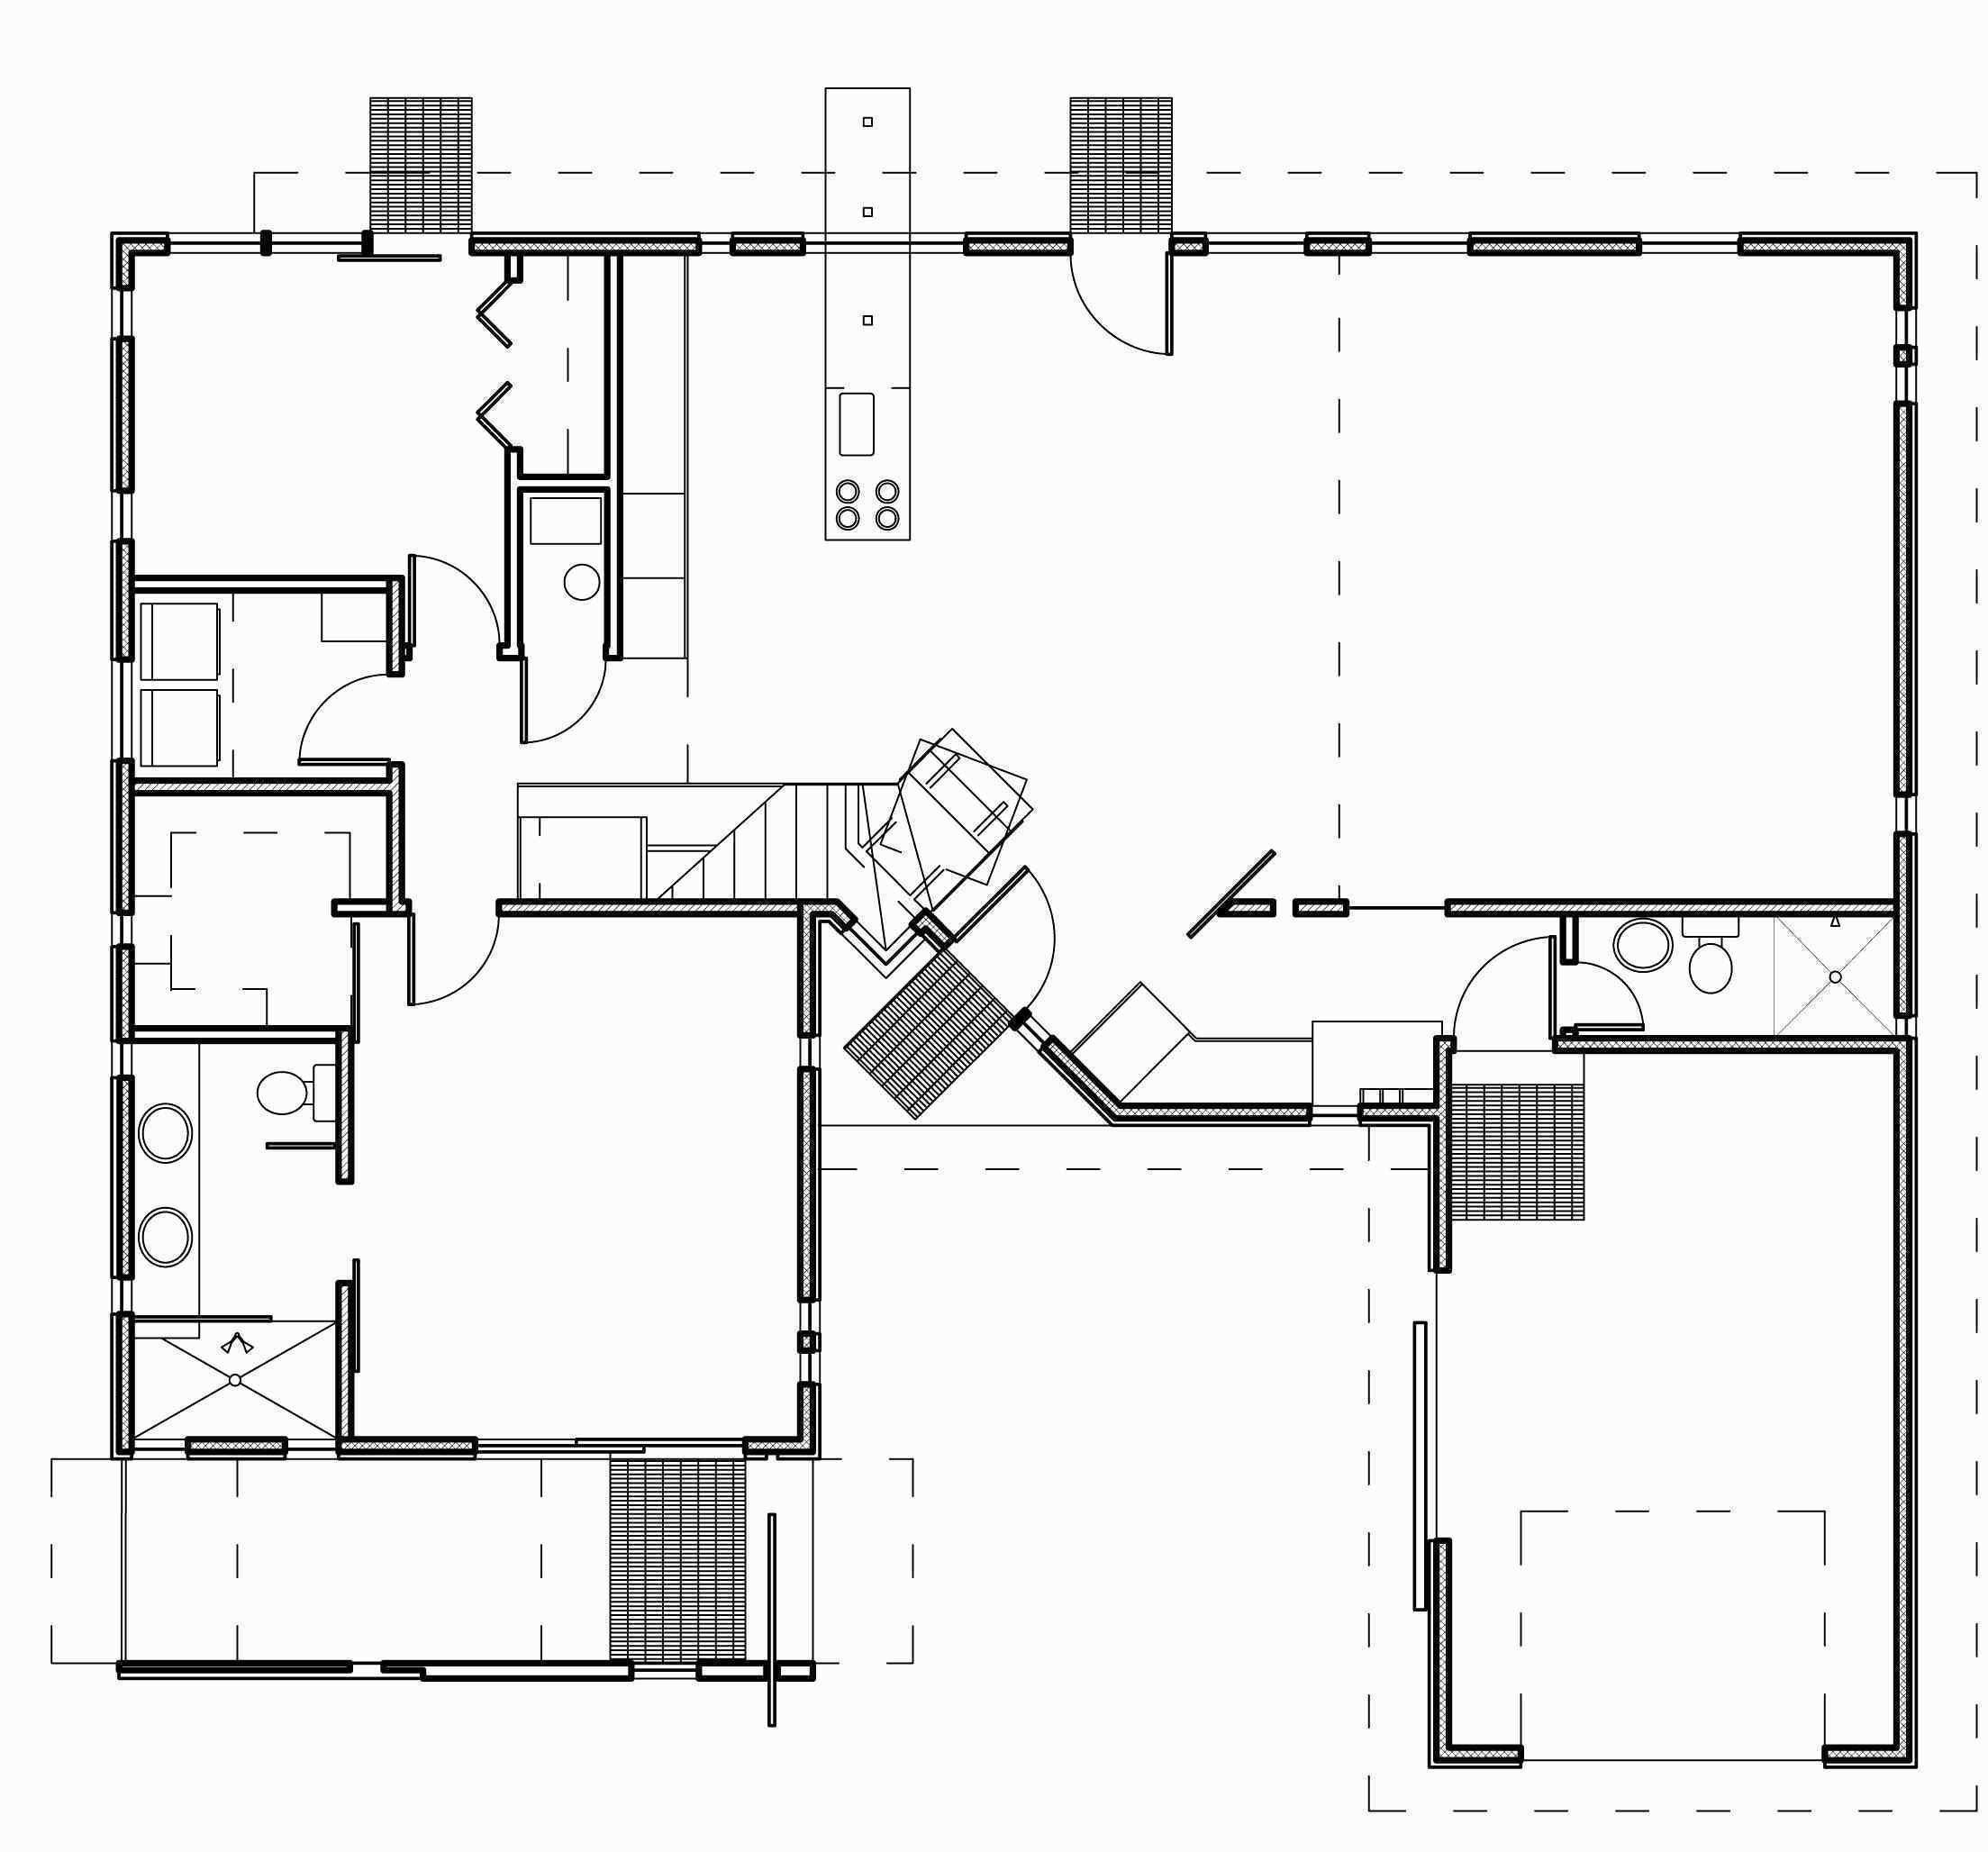 Funeral Decoration Ideas Beautiful 36 Wonderful Funeral Home Layout Construction Floor Plan In 2020 New House Plans Tiny House Plans Restaurant Floor Plan